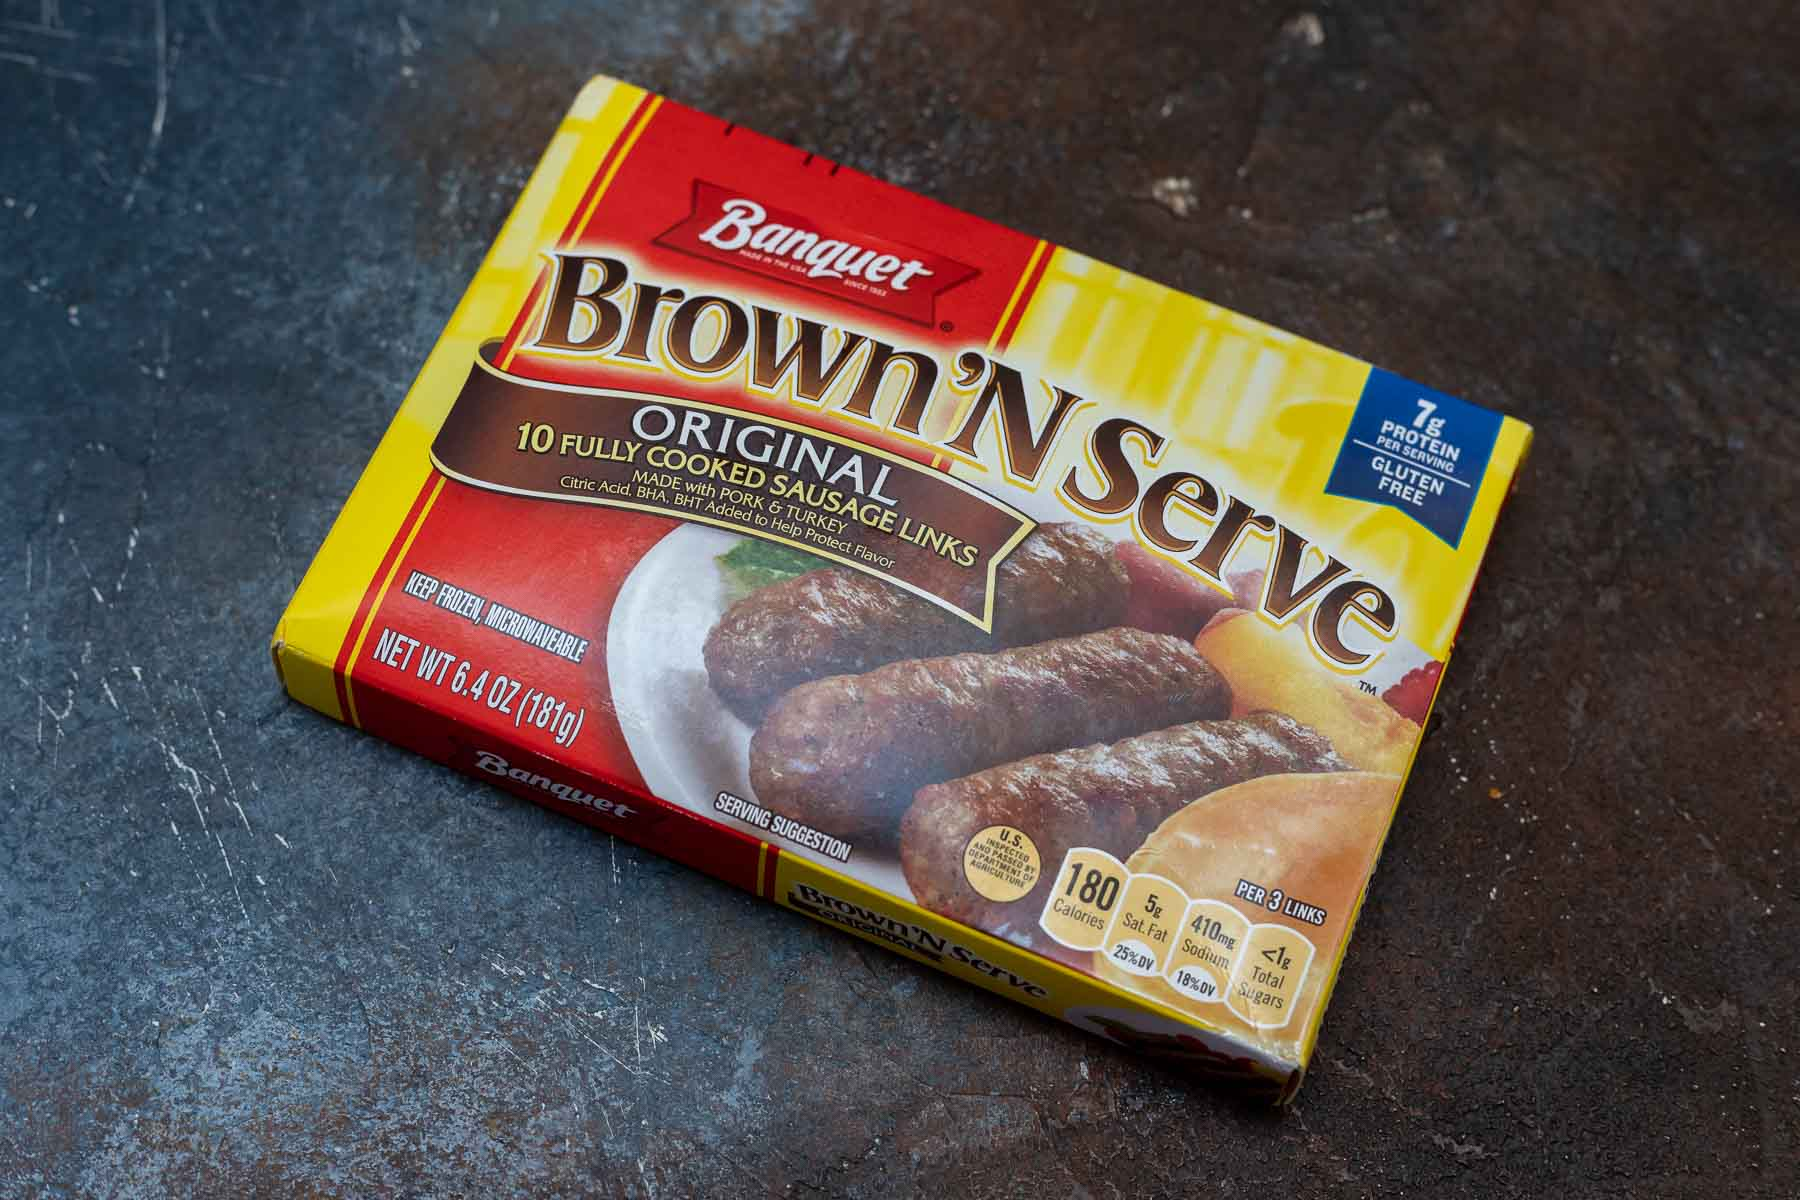 package of frozen brown and serve breakfast sausage